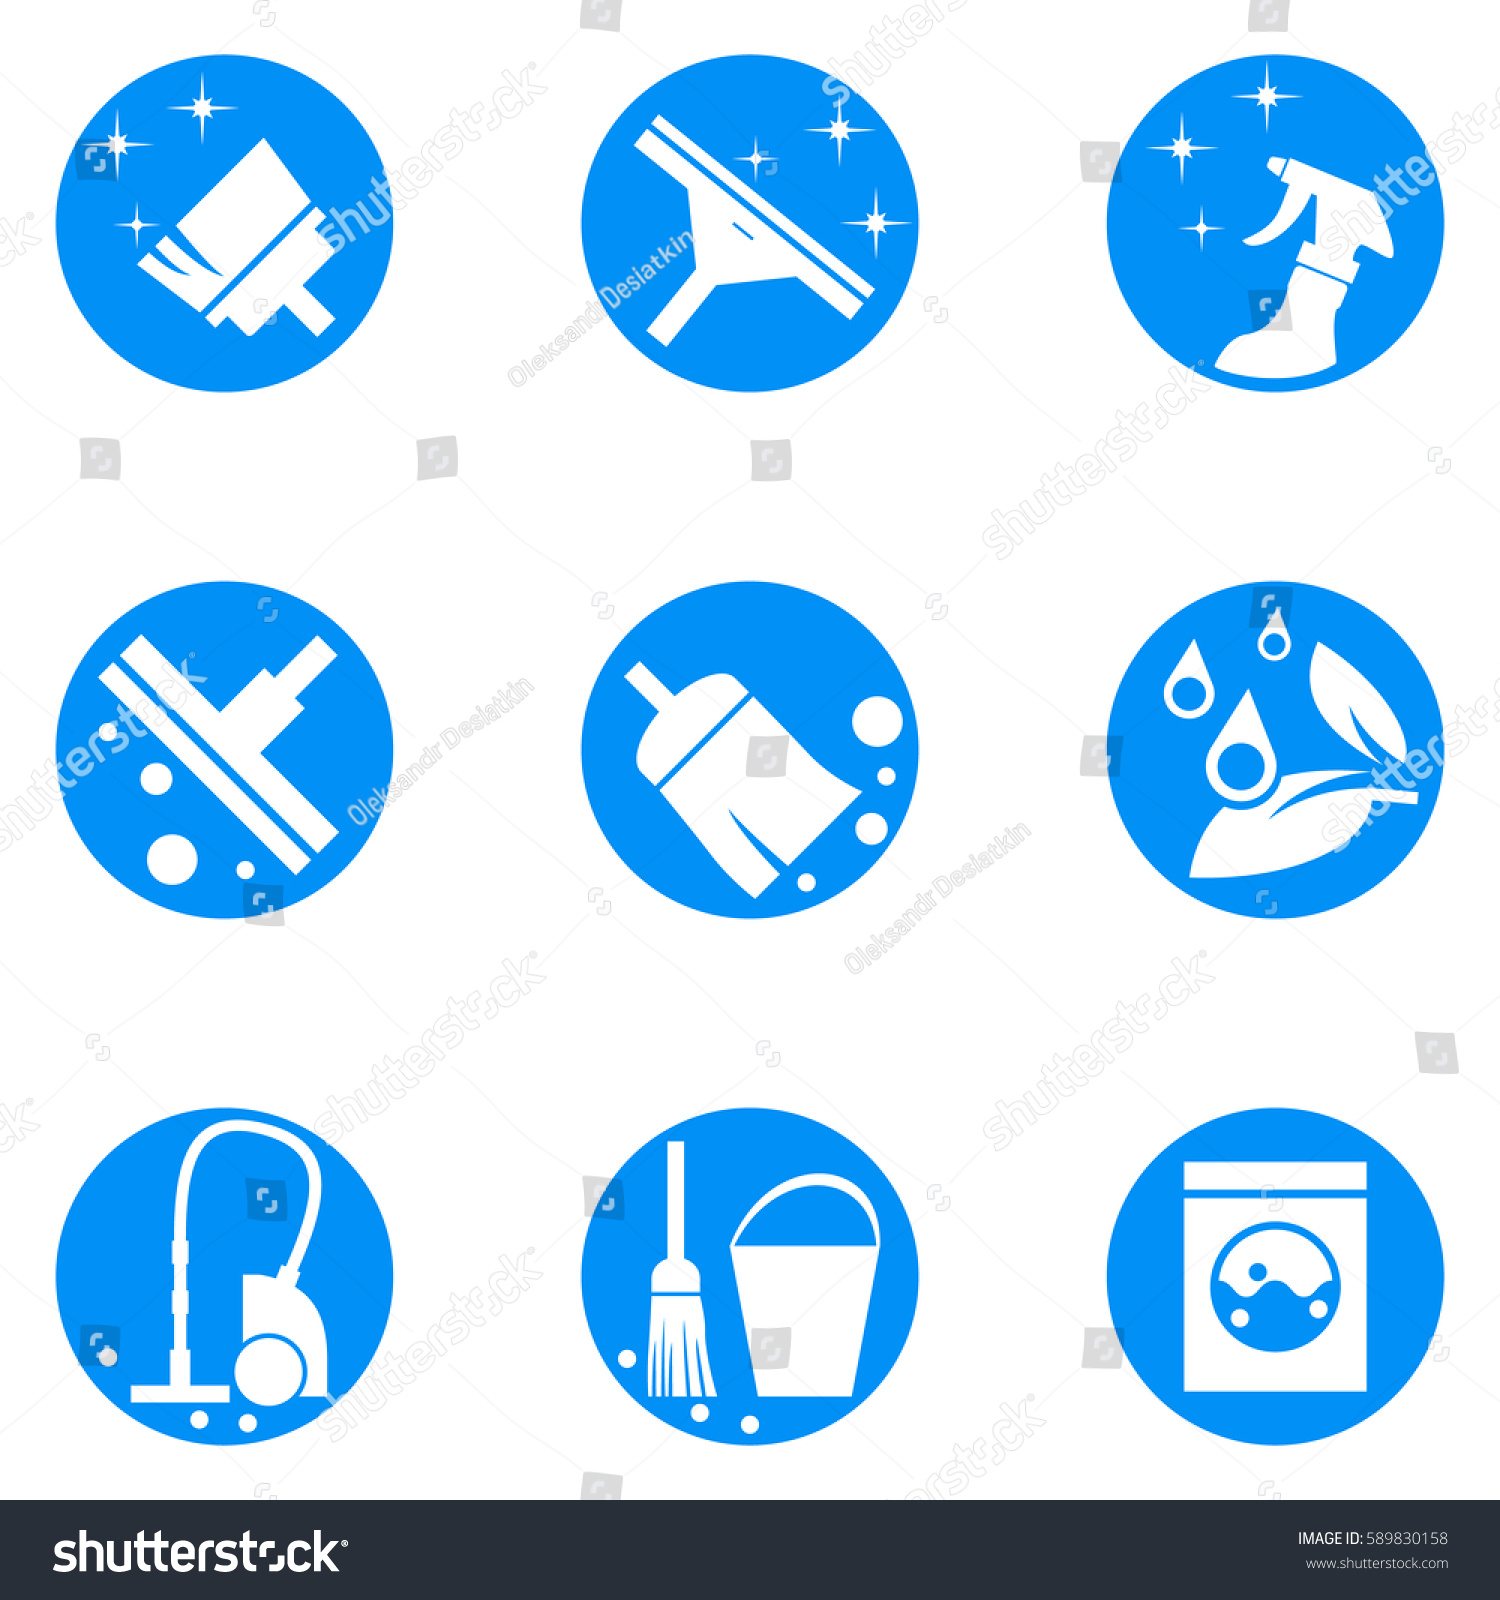 Building Cleaning Service Logo : House cleaning service logo set abstract stock vector